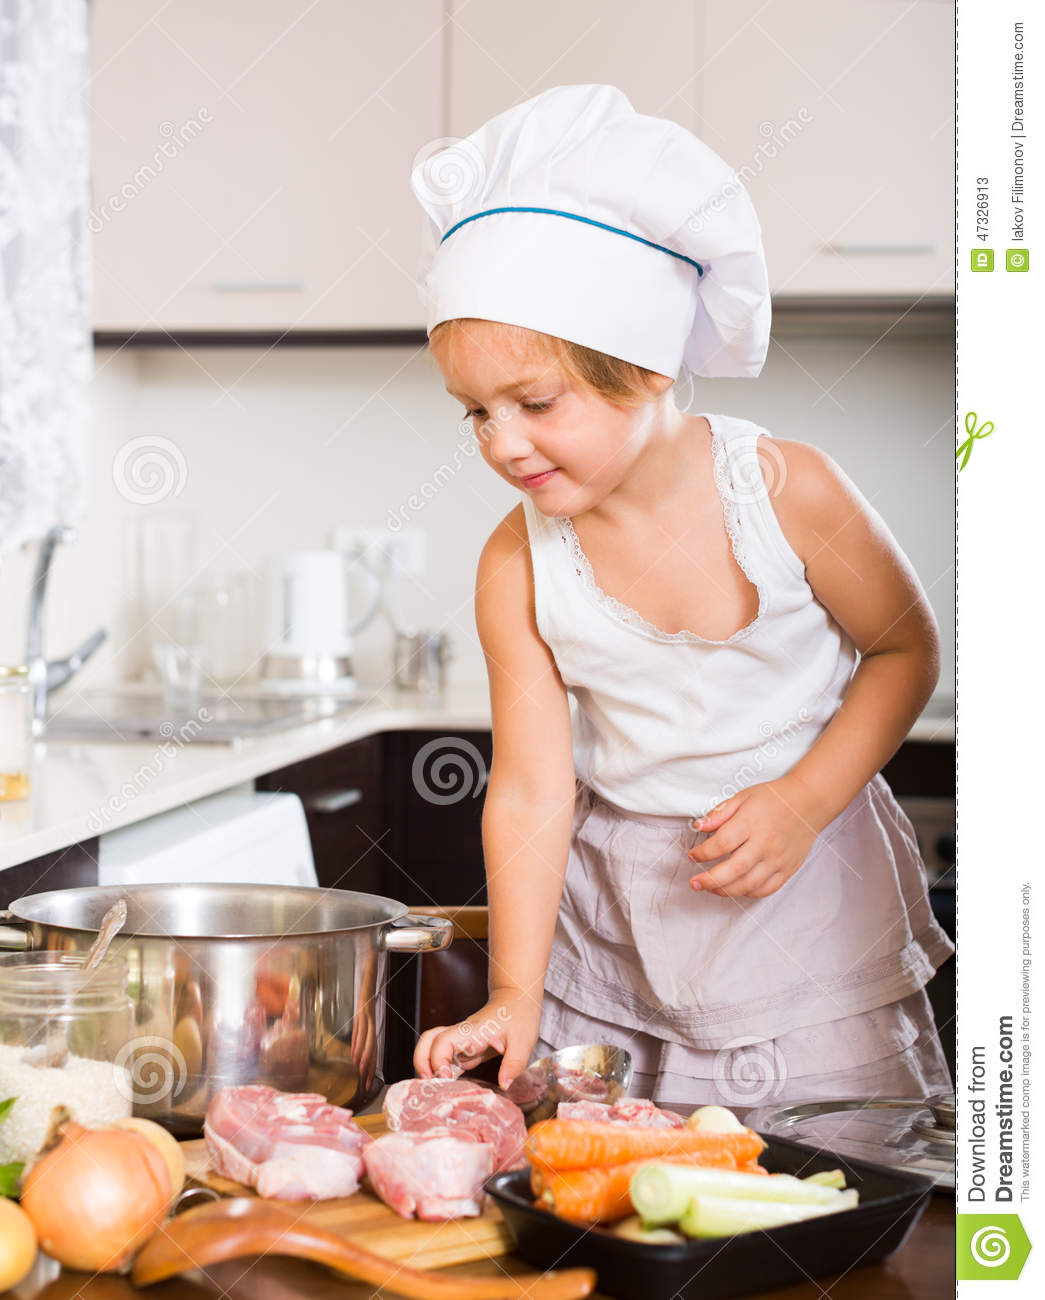 Baby Girl Cooking With Meat Stock Image